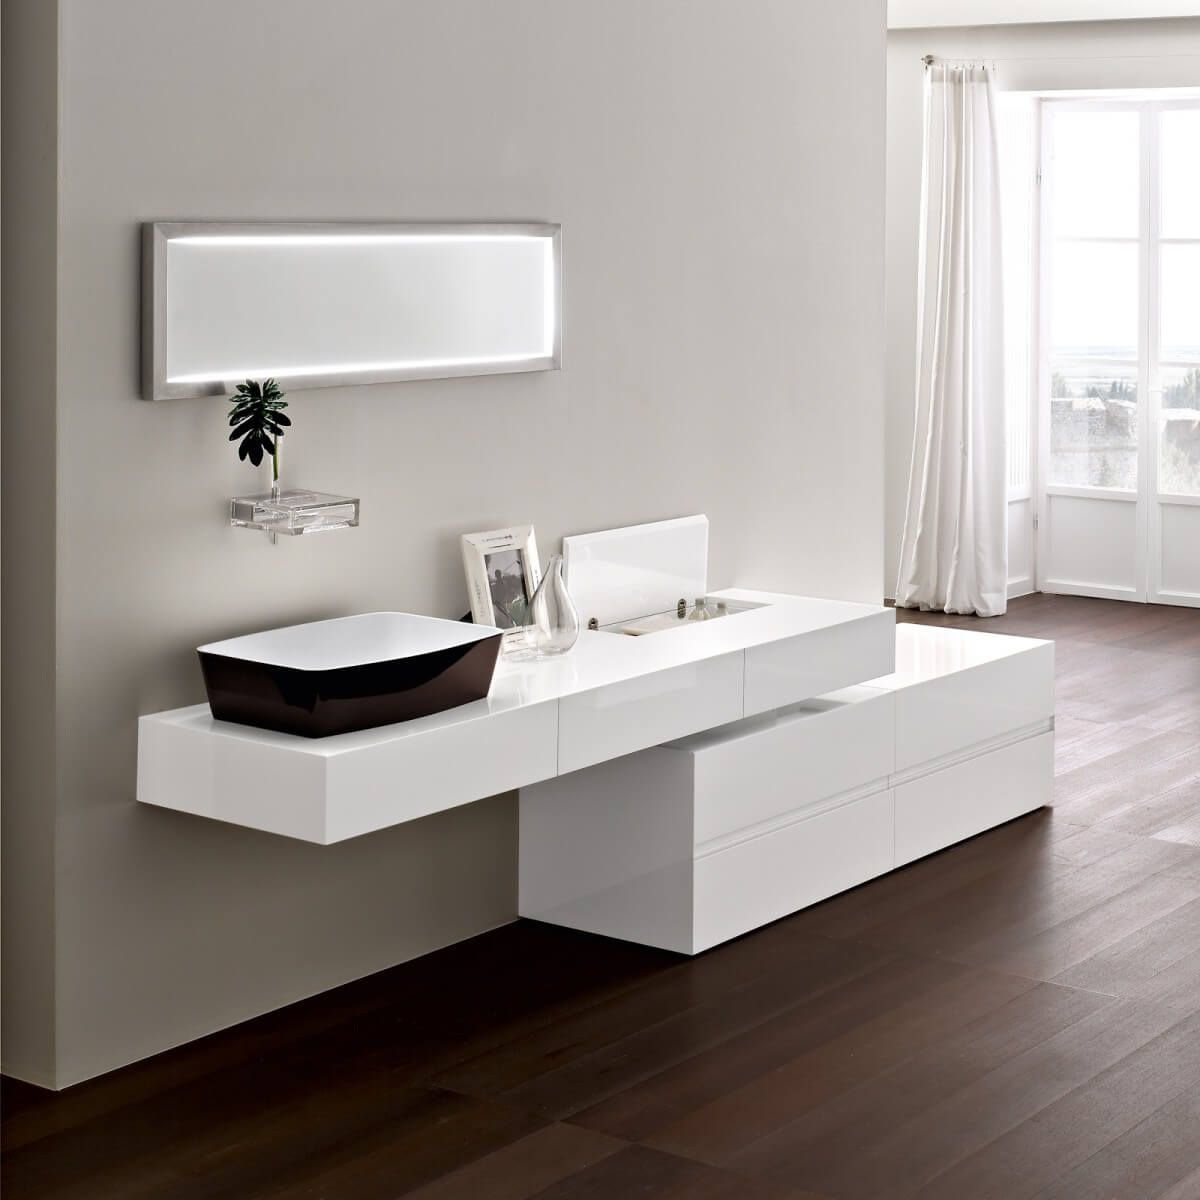 Ultra Modern Bathroom Designs Update The Decor Of Your Bathroom With These Ideas In 2020 Bathroom Furniture Modern Italian Bathroom Italian Bathroom Design